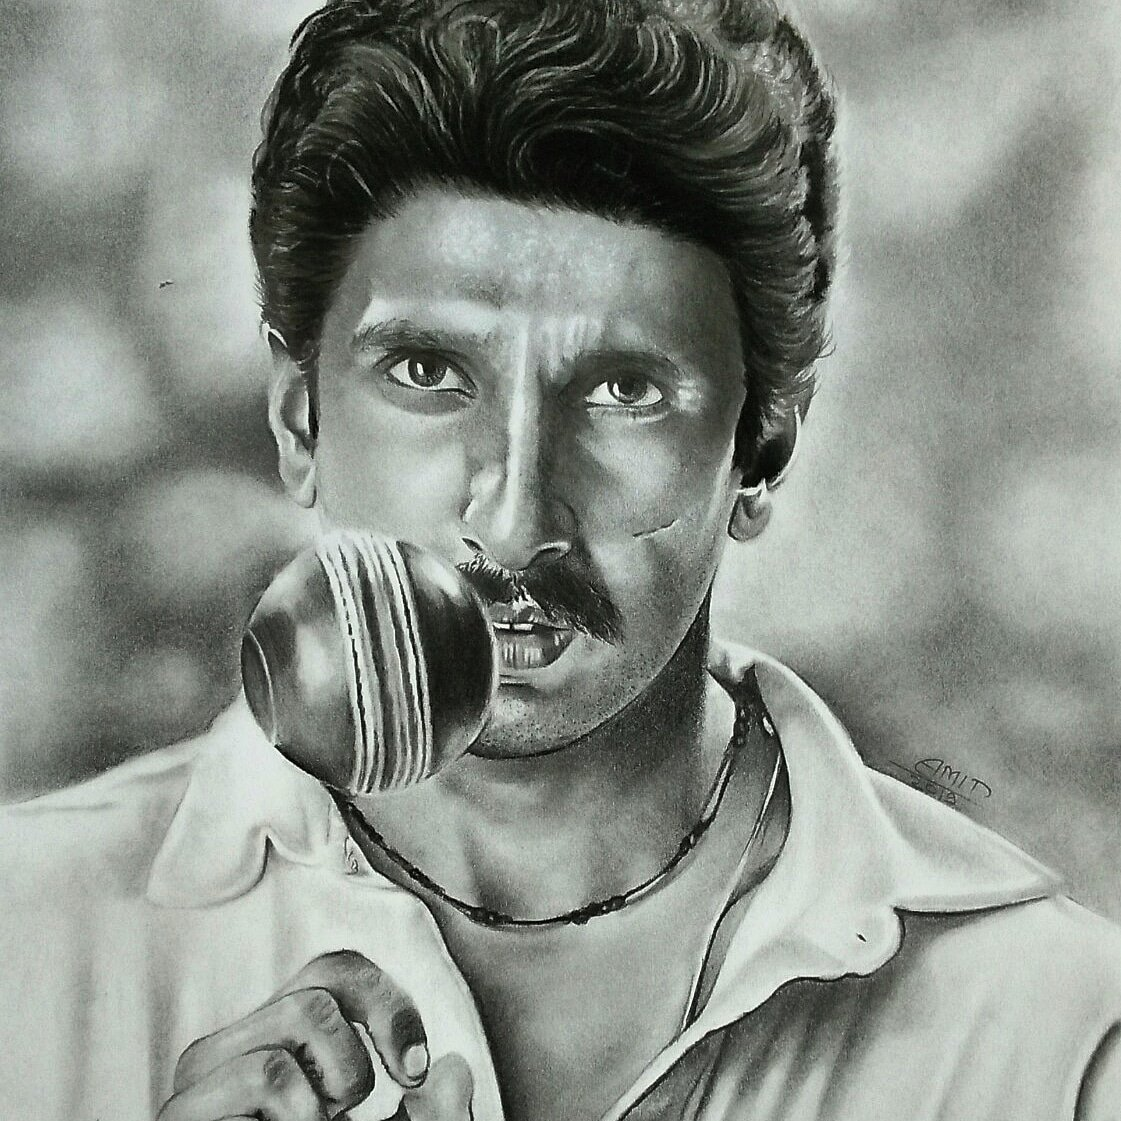 Final sketch of @RanveerOfficial as a @therealkapildev from movie @83themovie  #Final #Drawings #83 #ICCWorldCup2019 #1983worldcup #india #viral #IndianCricketTeam #indiavsNewzealand #Cricket #Cricbuzzlive #Bollywood #ranveeraskapil<br>http://pic.twitter.com/hdXFp5Mtmj